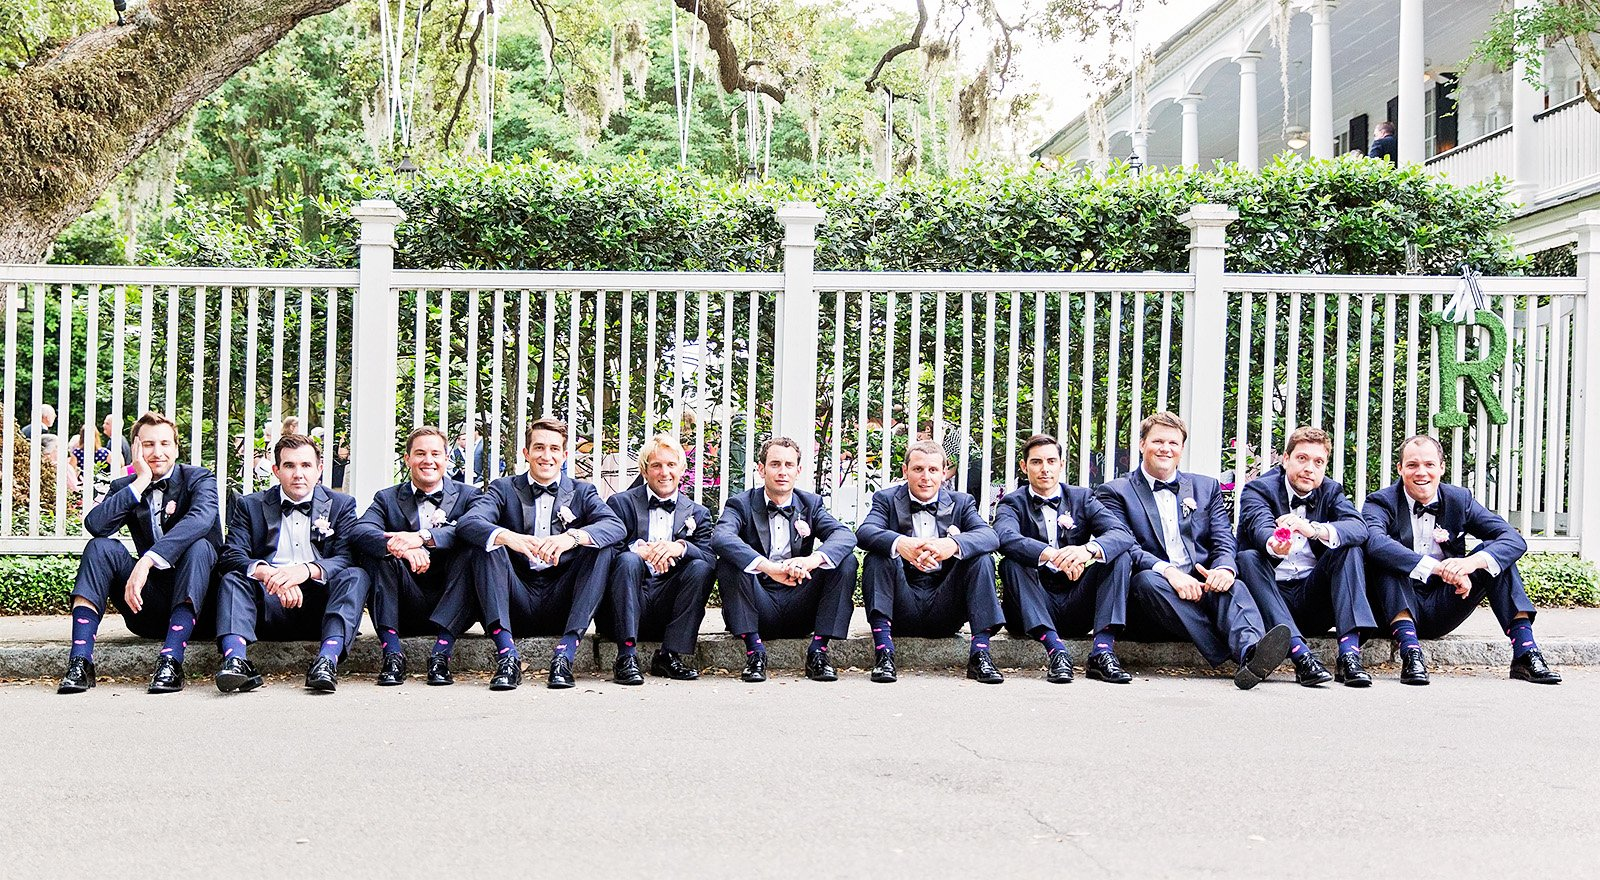 Groomsmen suits for wedding in Charleston